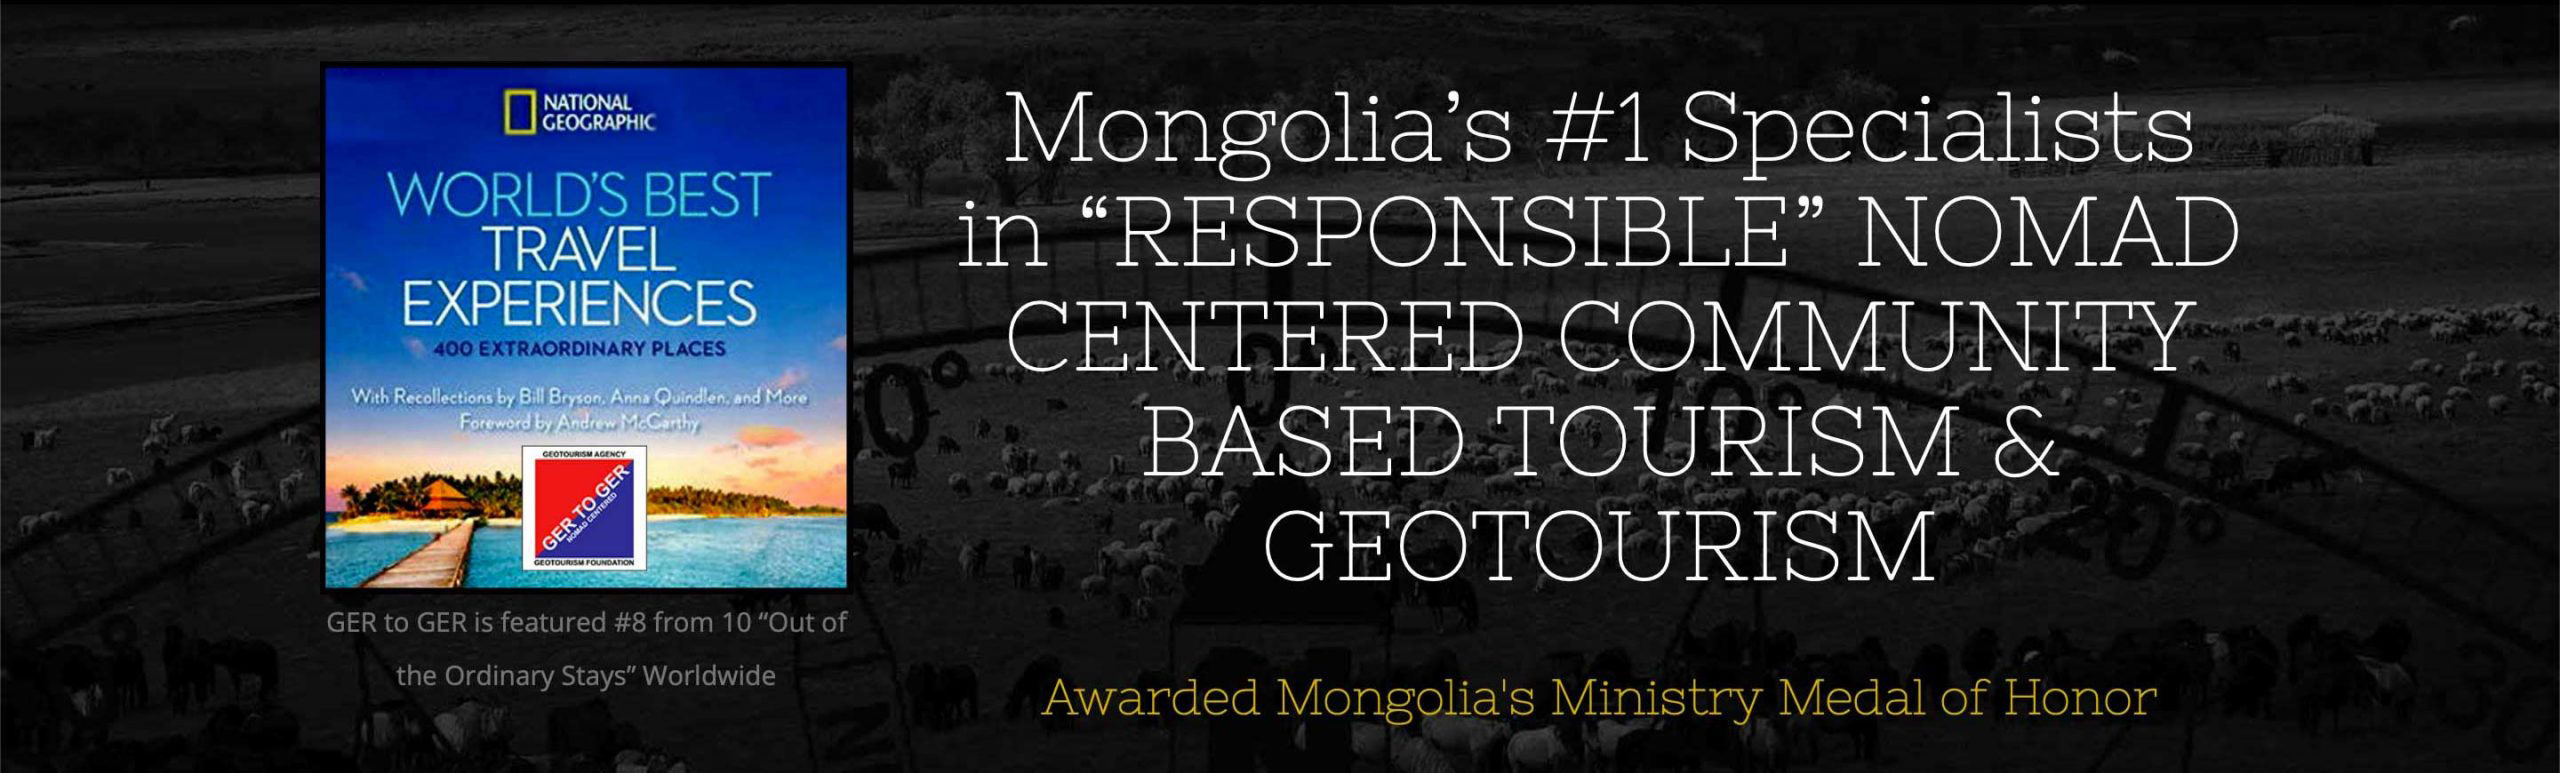 GER to GER GEOtourism Mongolia